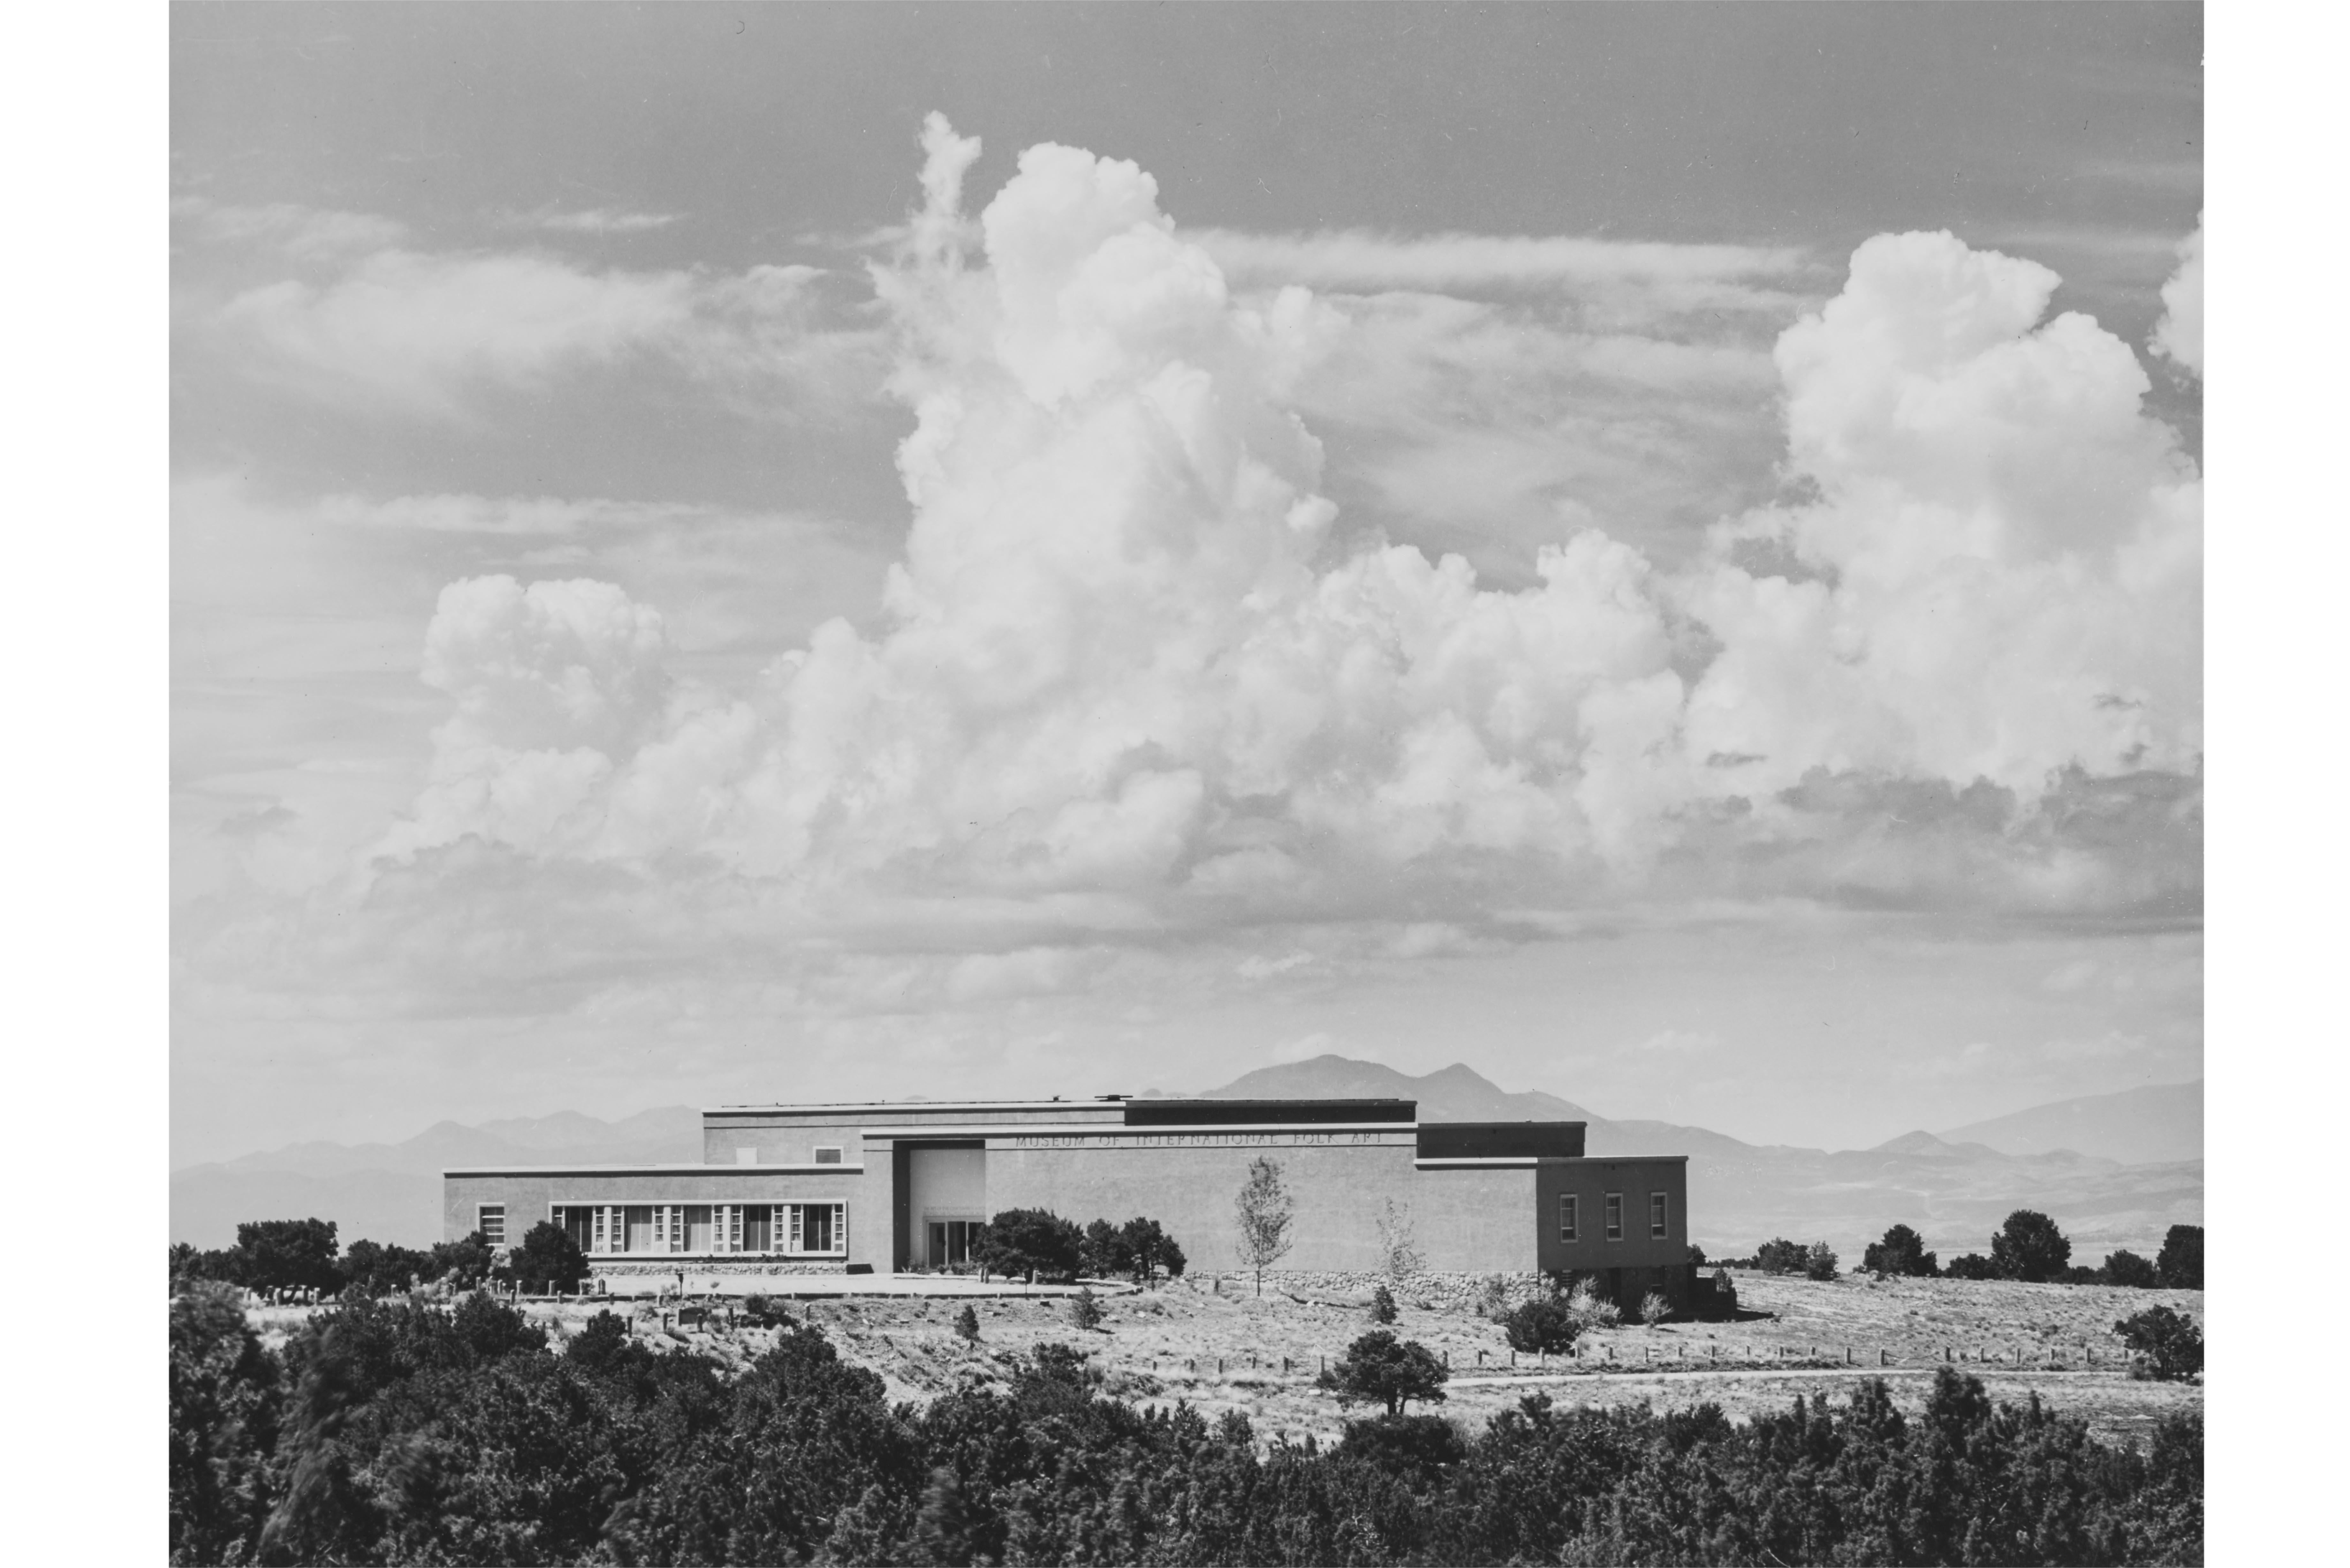 image of the Museum exterior, showing it settled into the landscape under a dramatic cloudbank